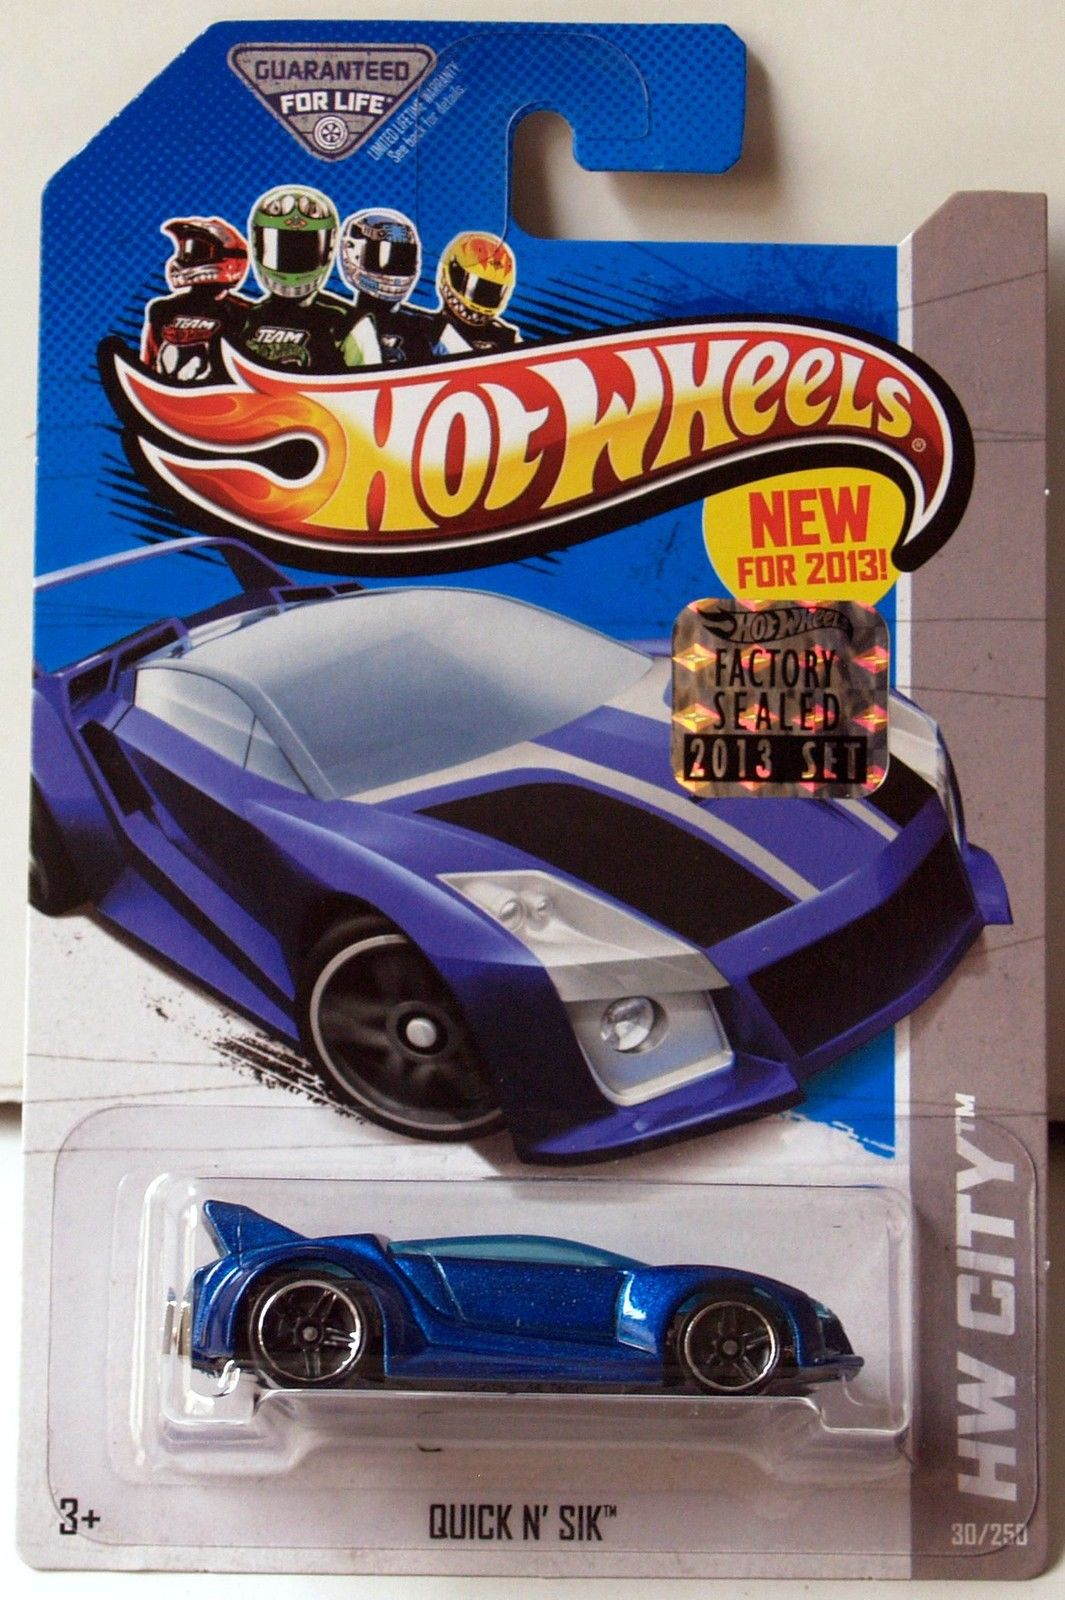 HOT WHEELS 2013 HW CITY QUICK N SIK FACTORY SEALED